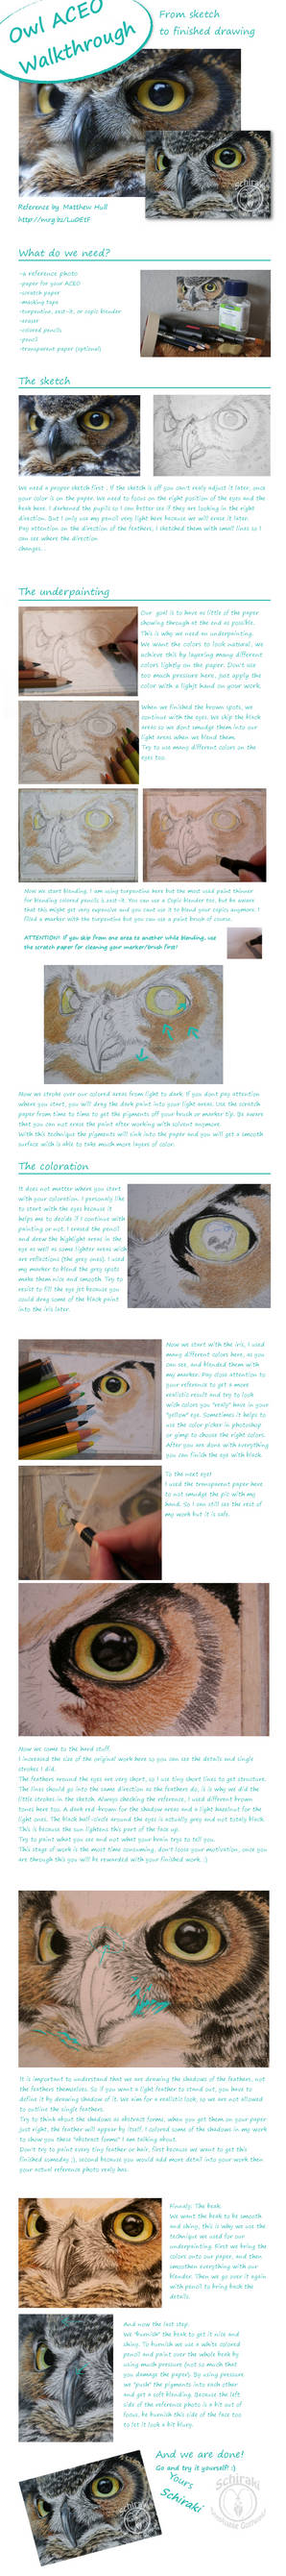 coloring tutorial (colored pencil and solvents)